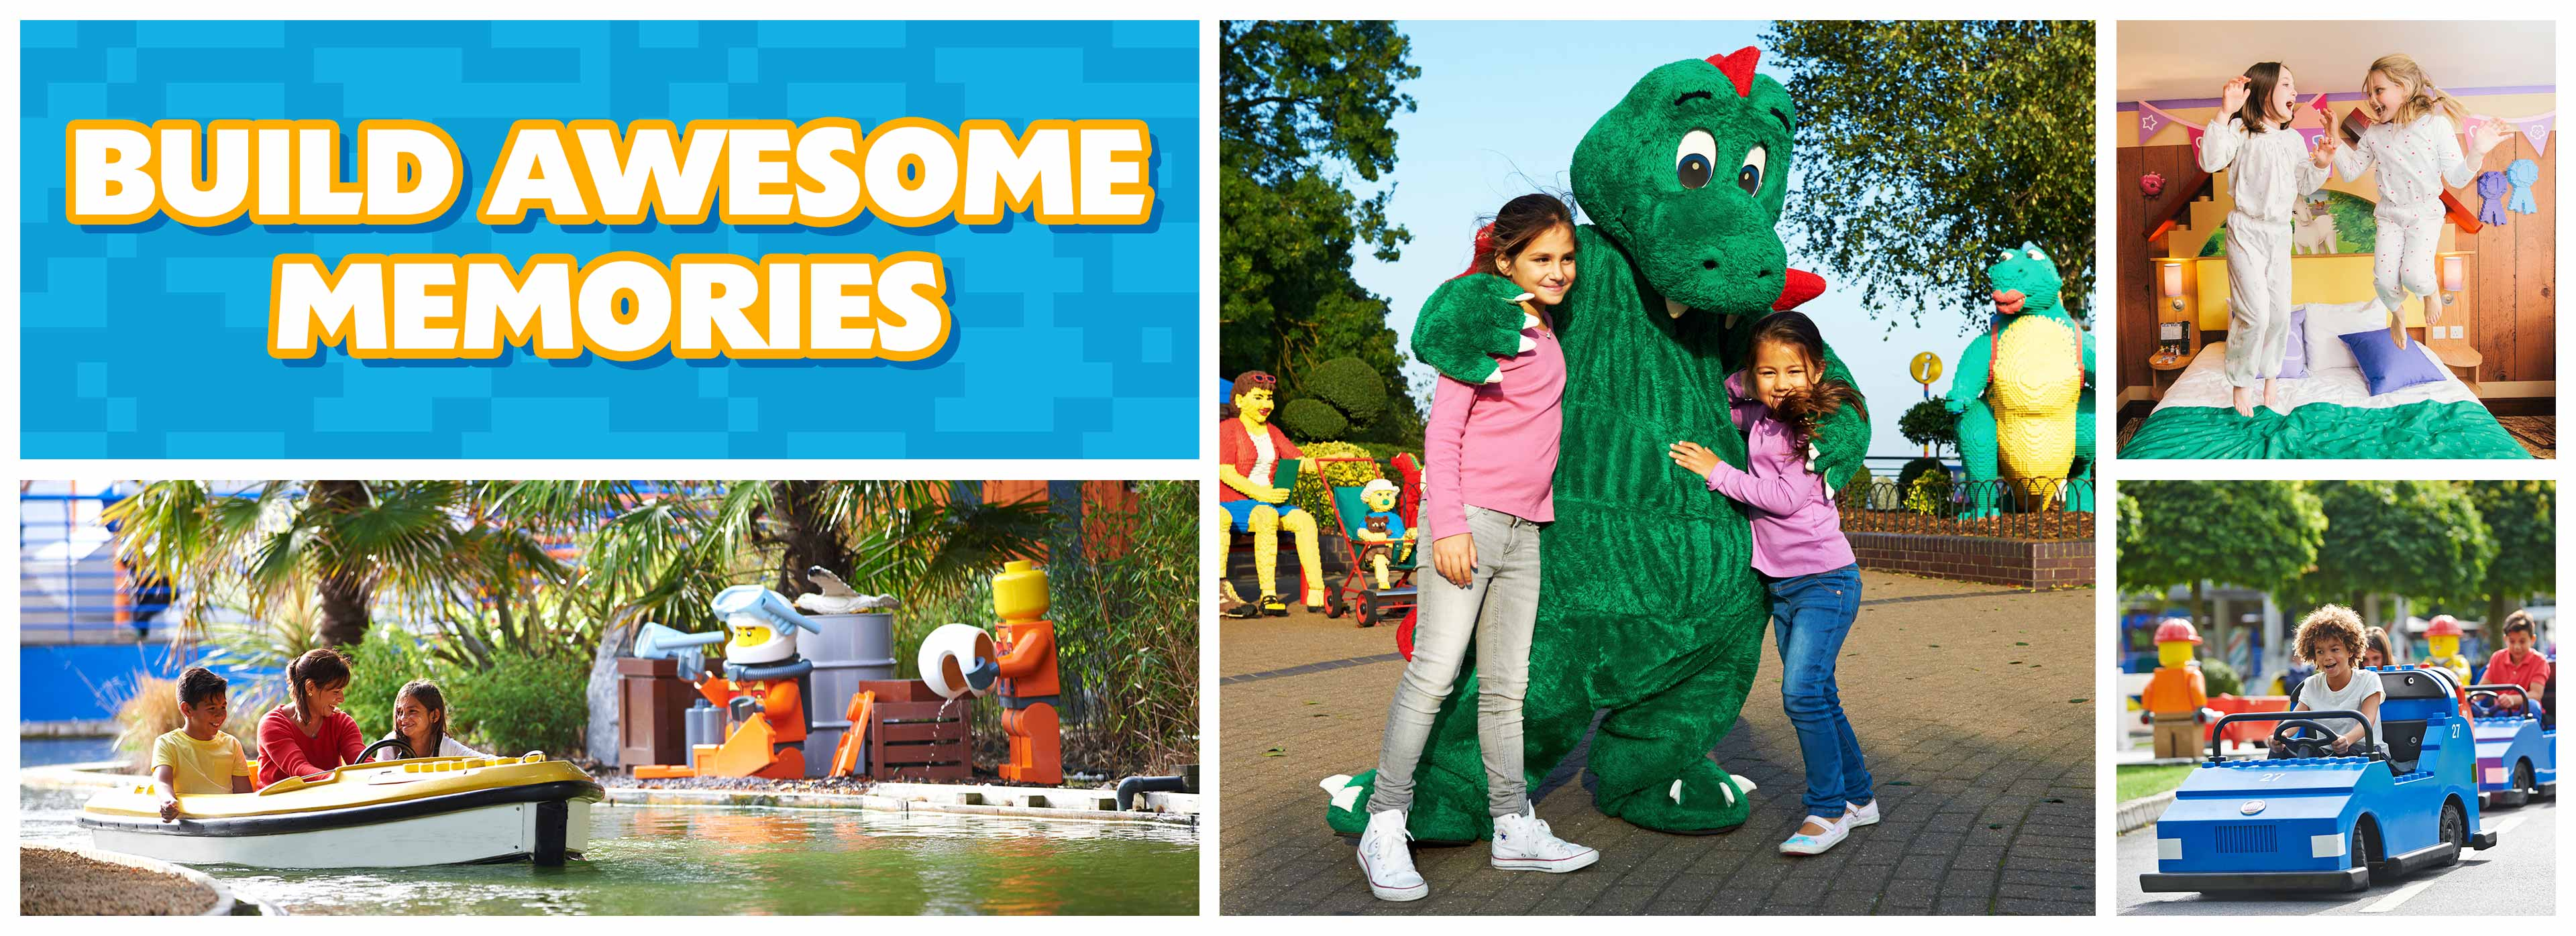 Plan your stay at LEGOLAND Holidays